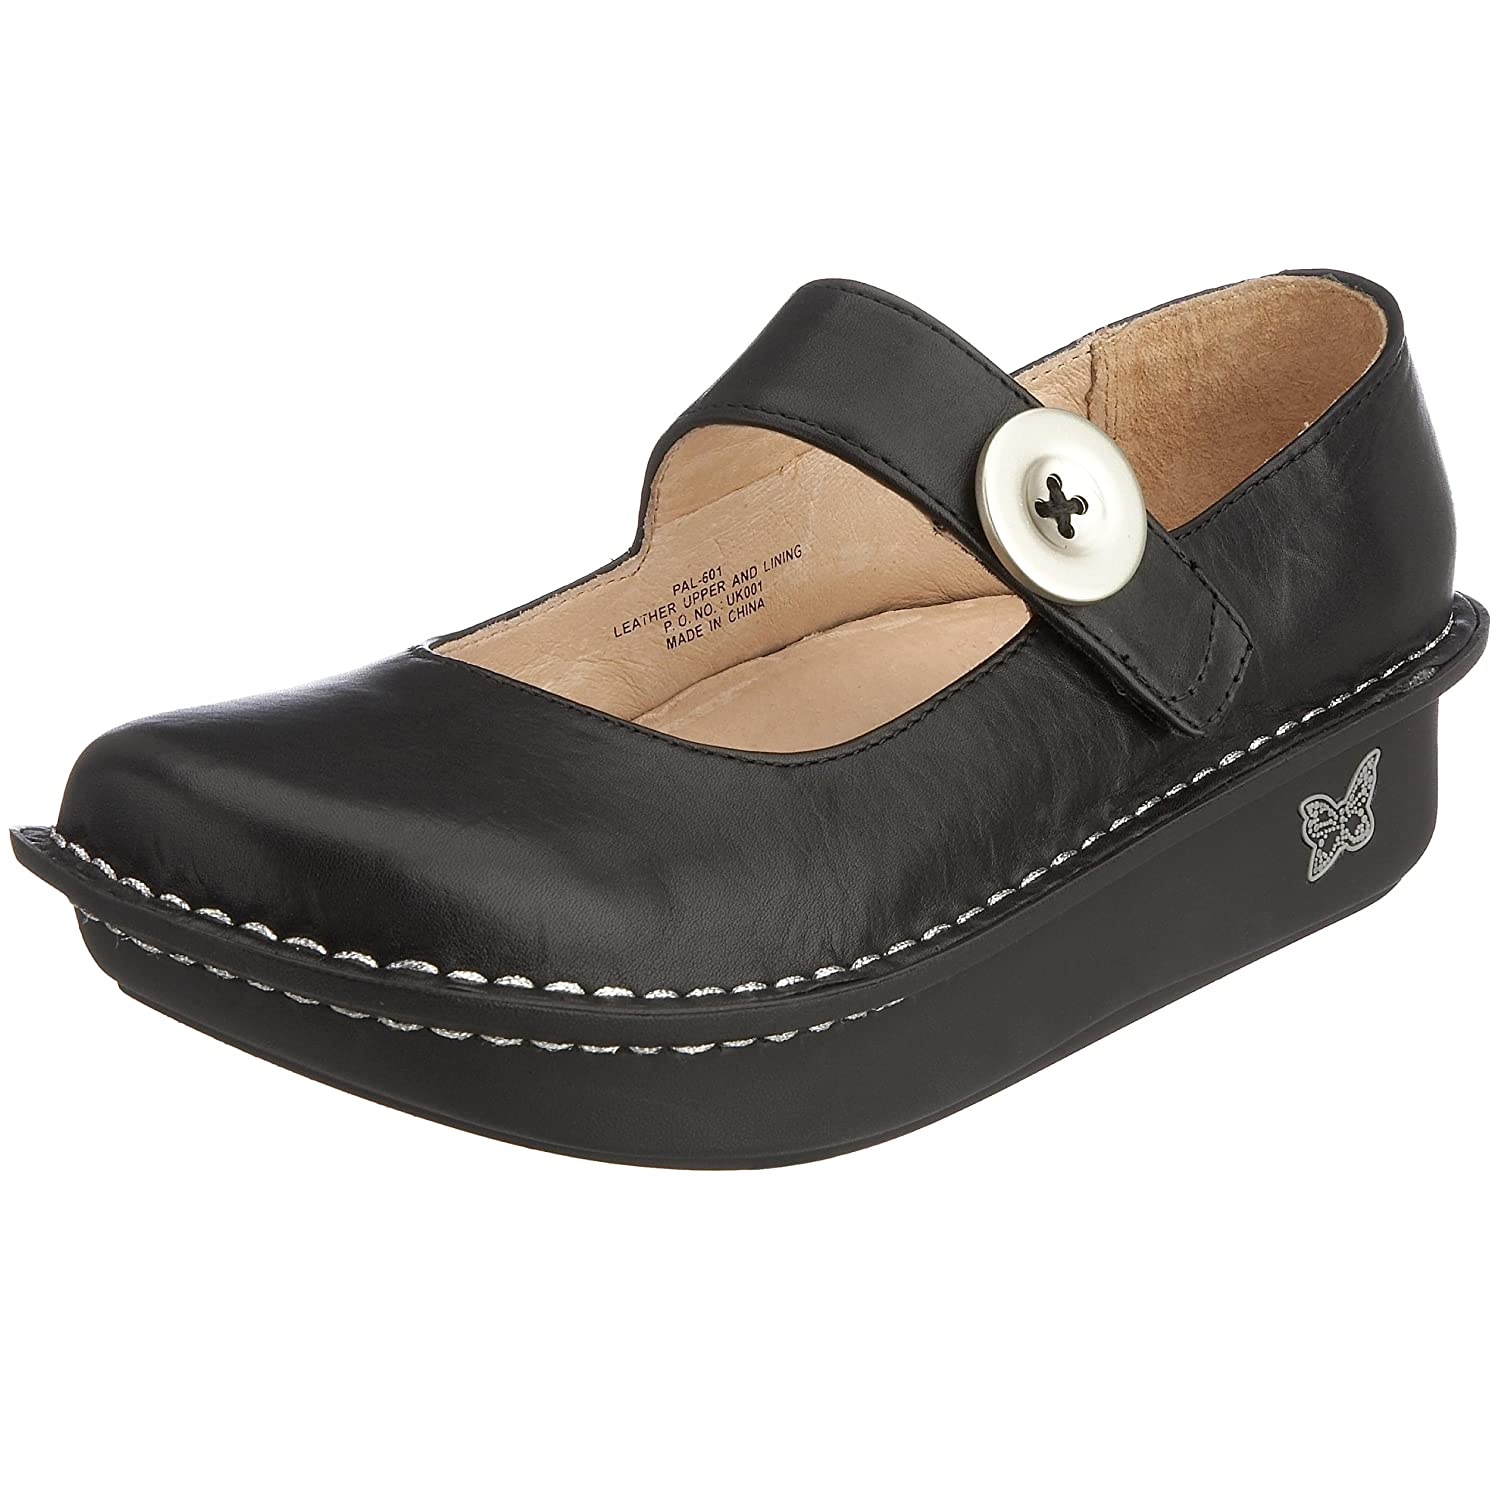 Best nursing shoes